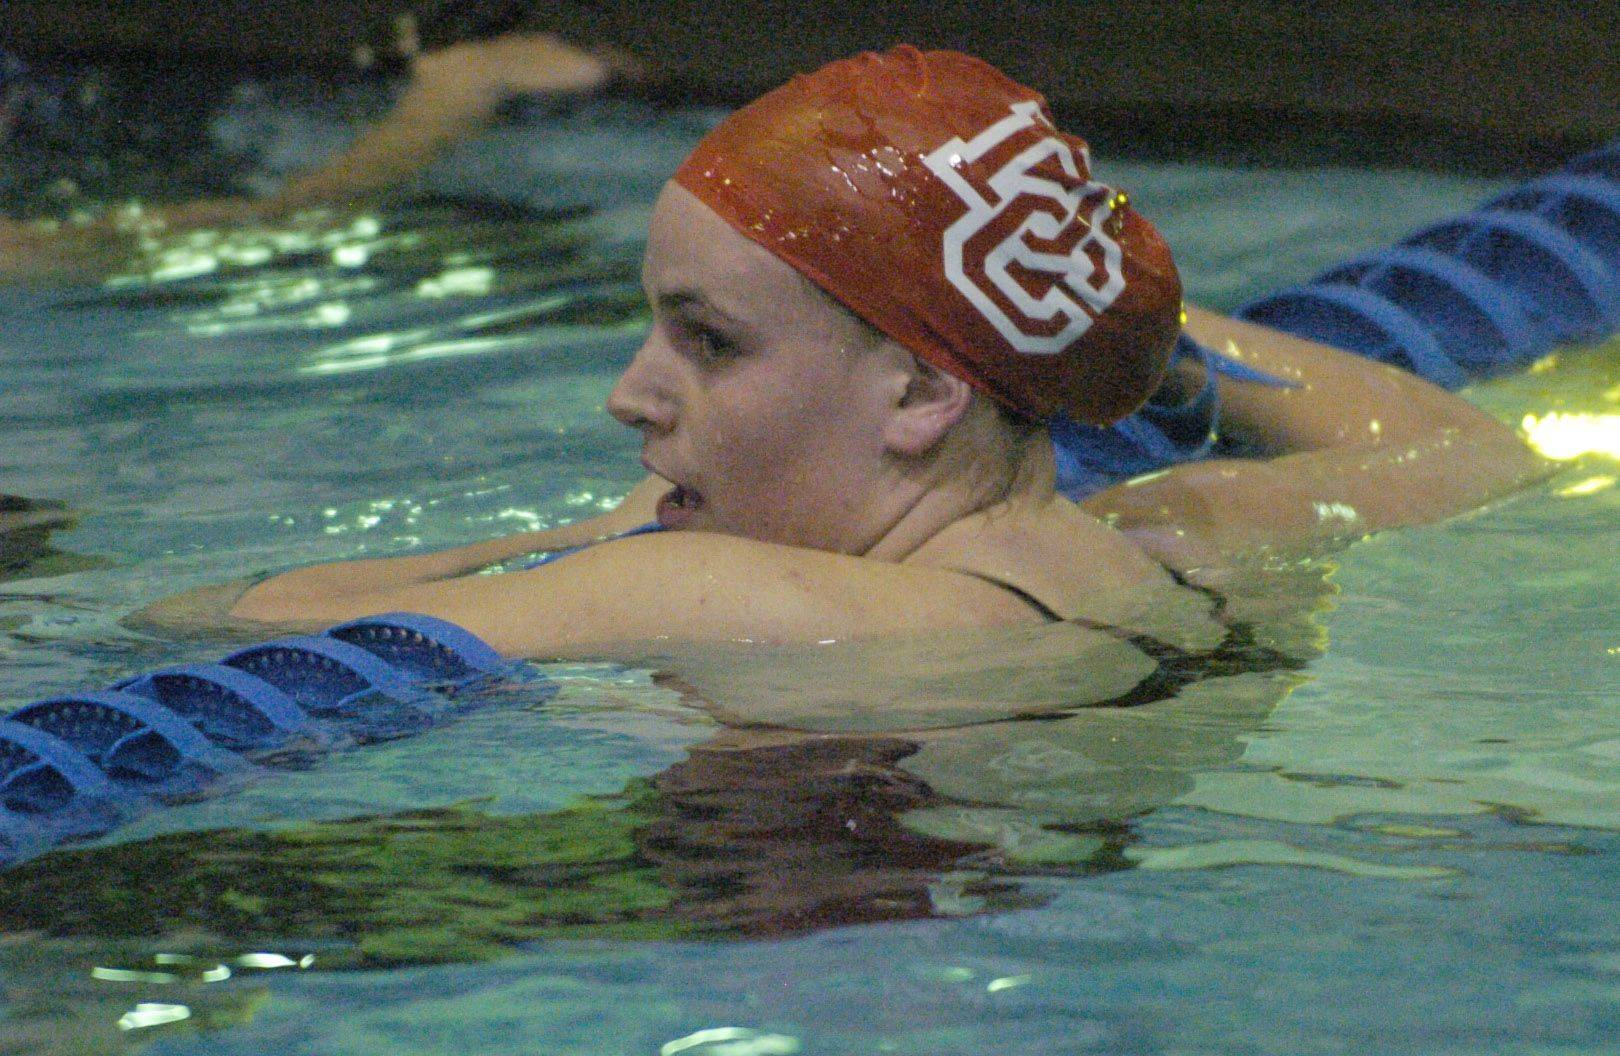 Colleen Champa of Dundee Crown rests on the lane line upon completion of her 100-yard breast stroke race during Saturday's state swimming finals at Evanston.